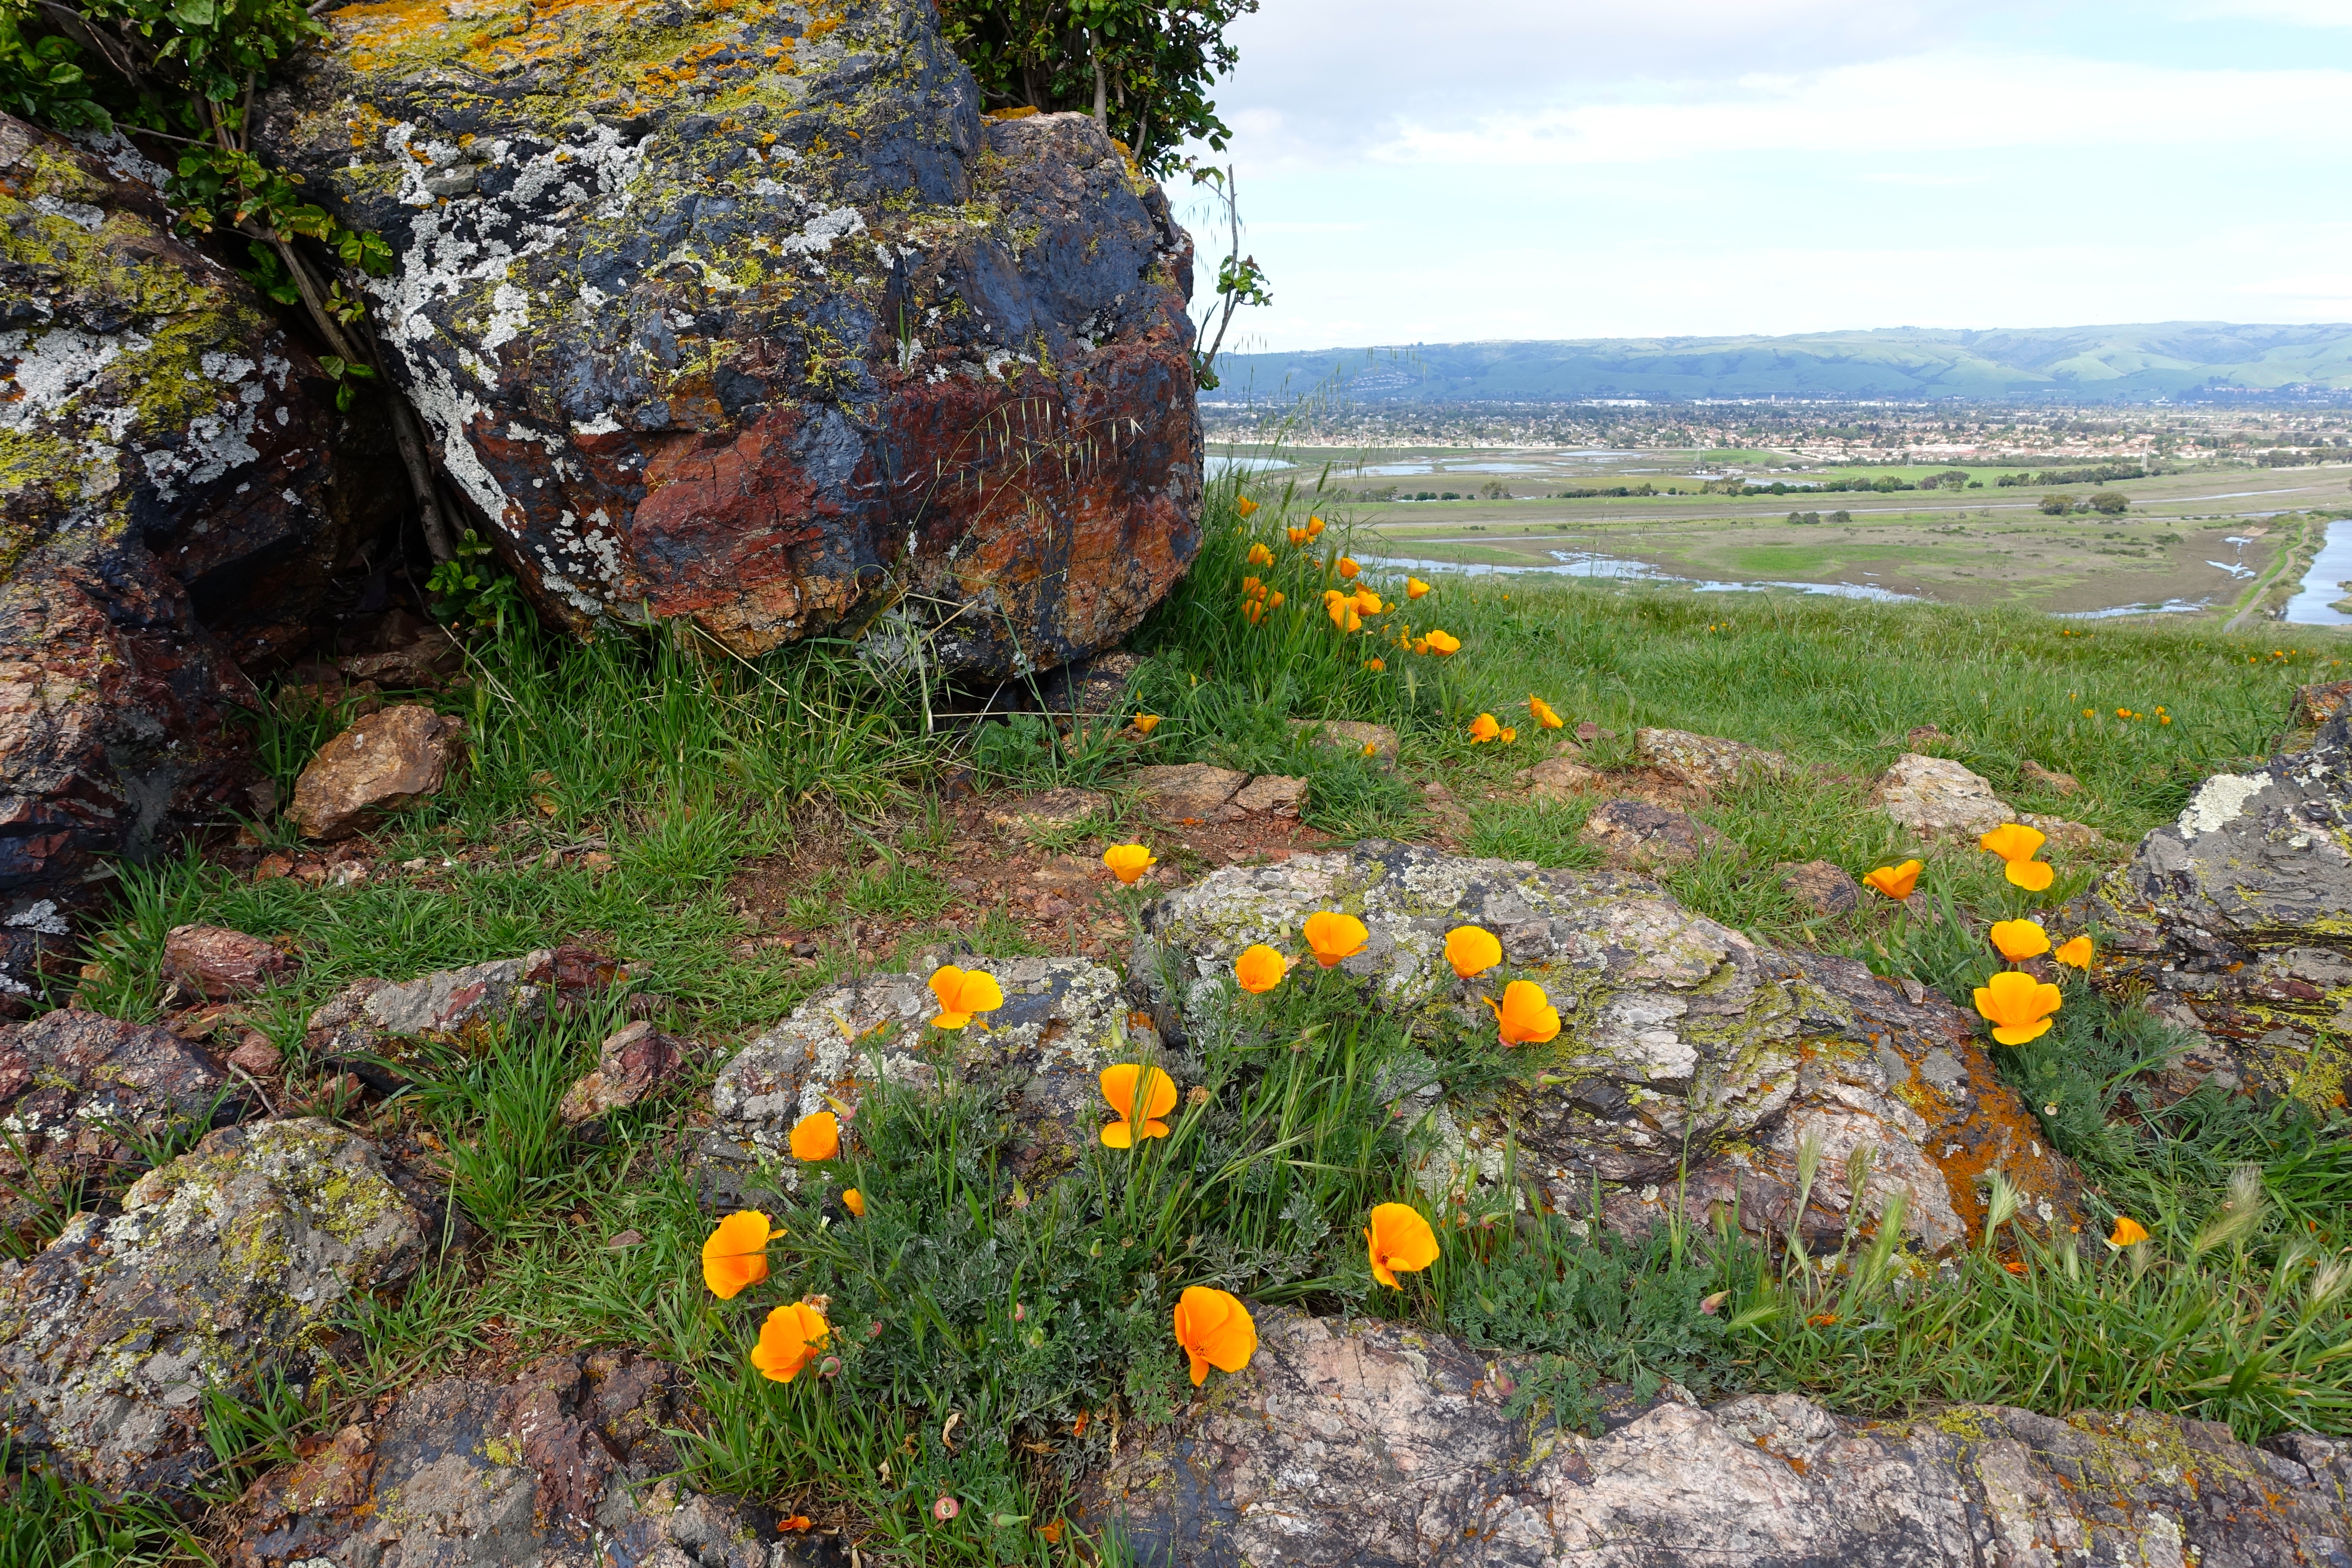 Wildflowers and vibrant rock formations. Coyote Hills Regional Park